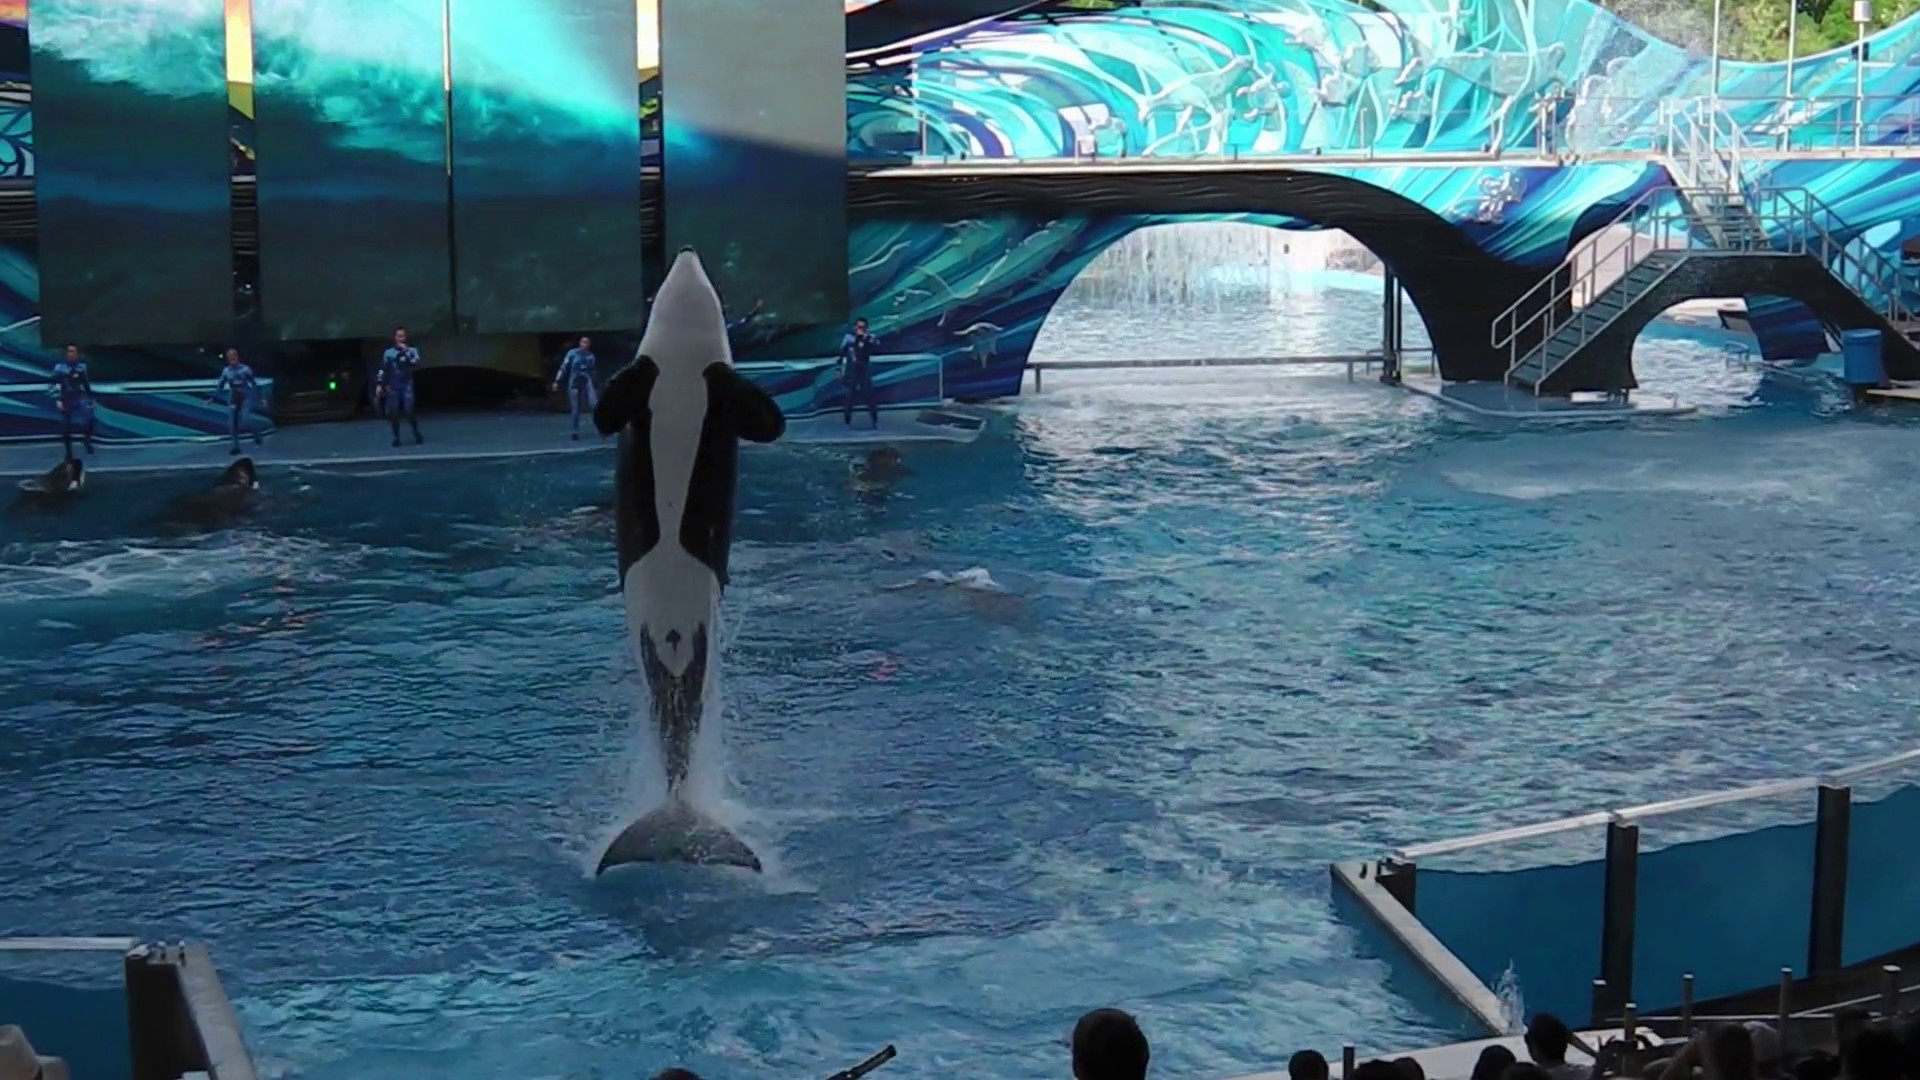 Res: 1920x1080, Orlando, Florida, United States - April 22, 2012: Tilikum, the killer  whale, performs in the shamu show at Seaworld. Tilikum is the largest and  most famous ...